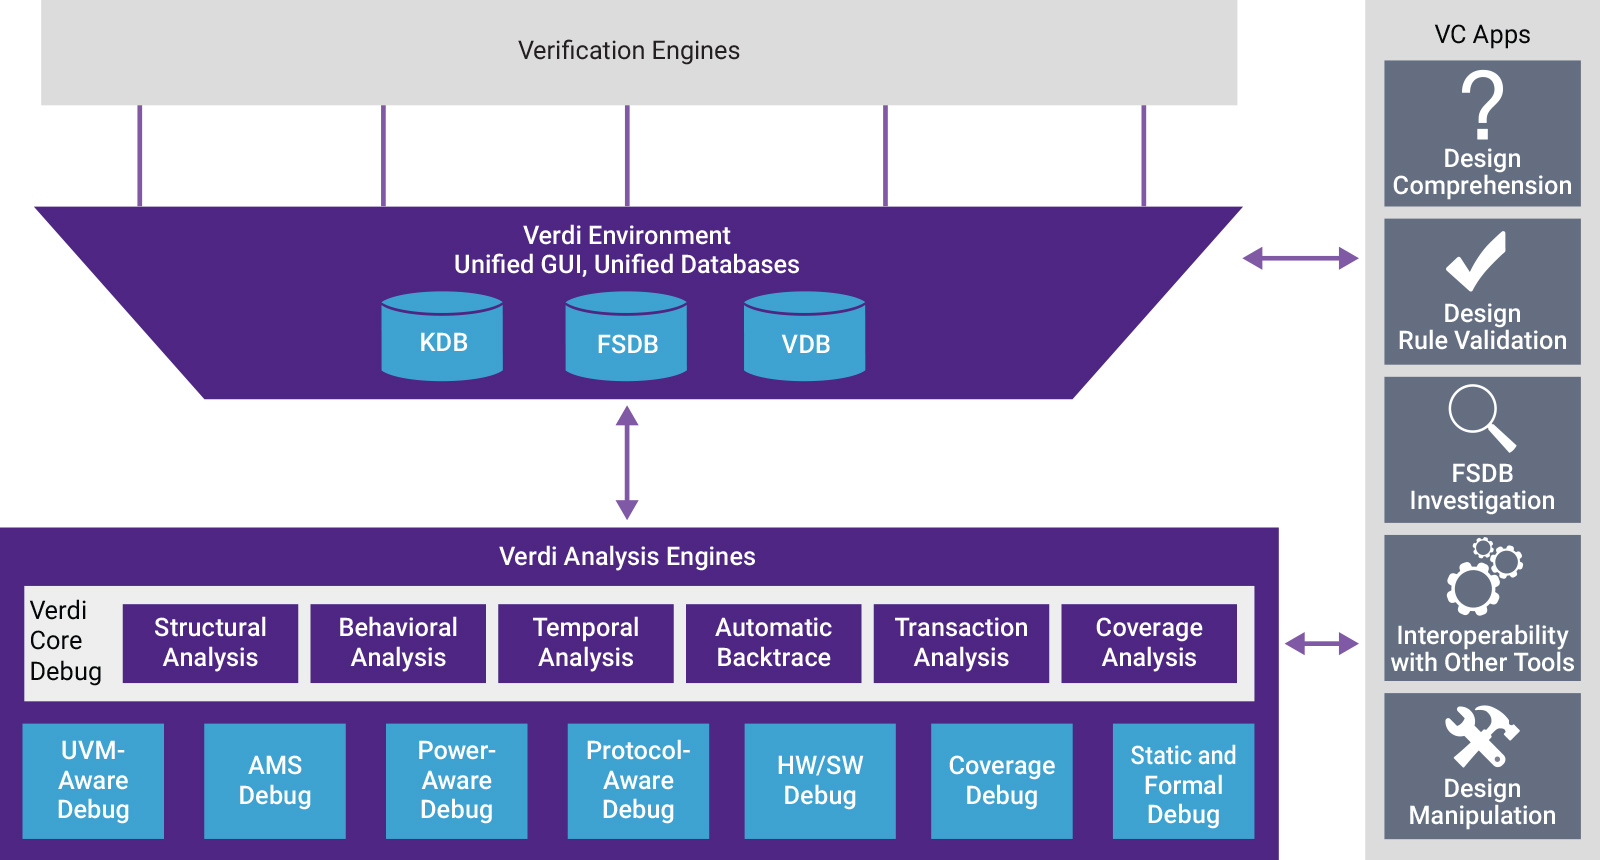 Verdi Automated Debug System showing Verification and Verdi Analysis engines and VC Apps